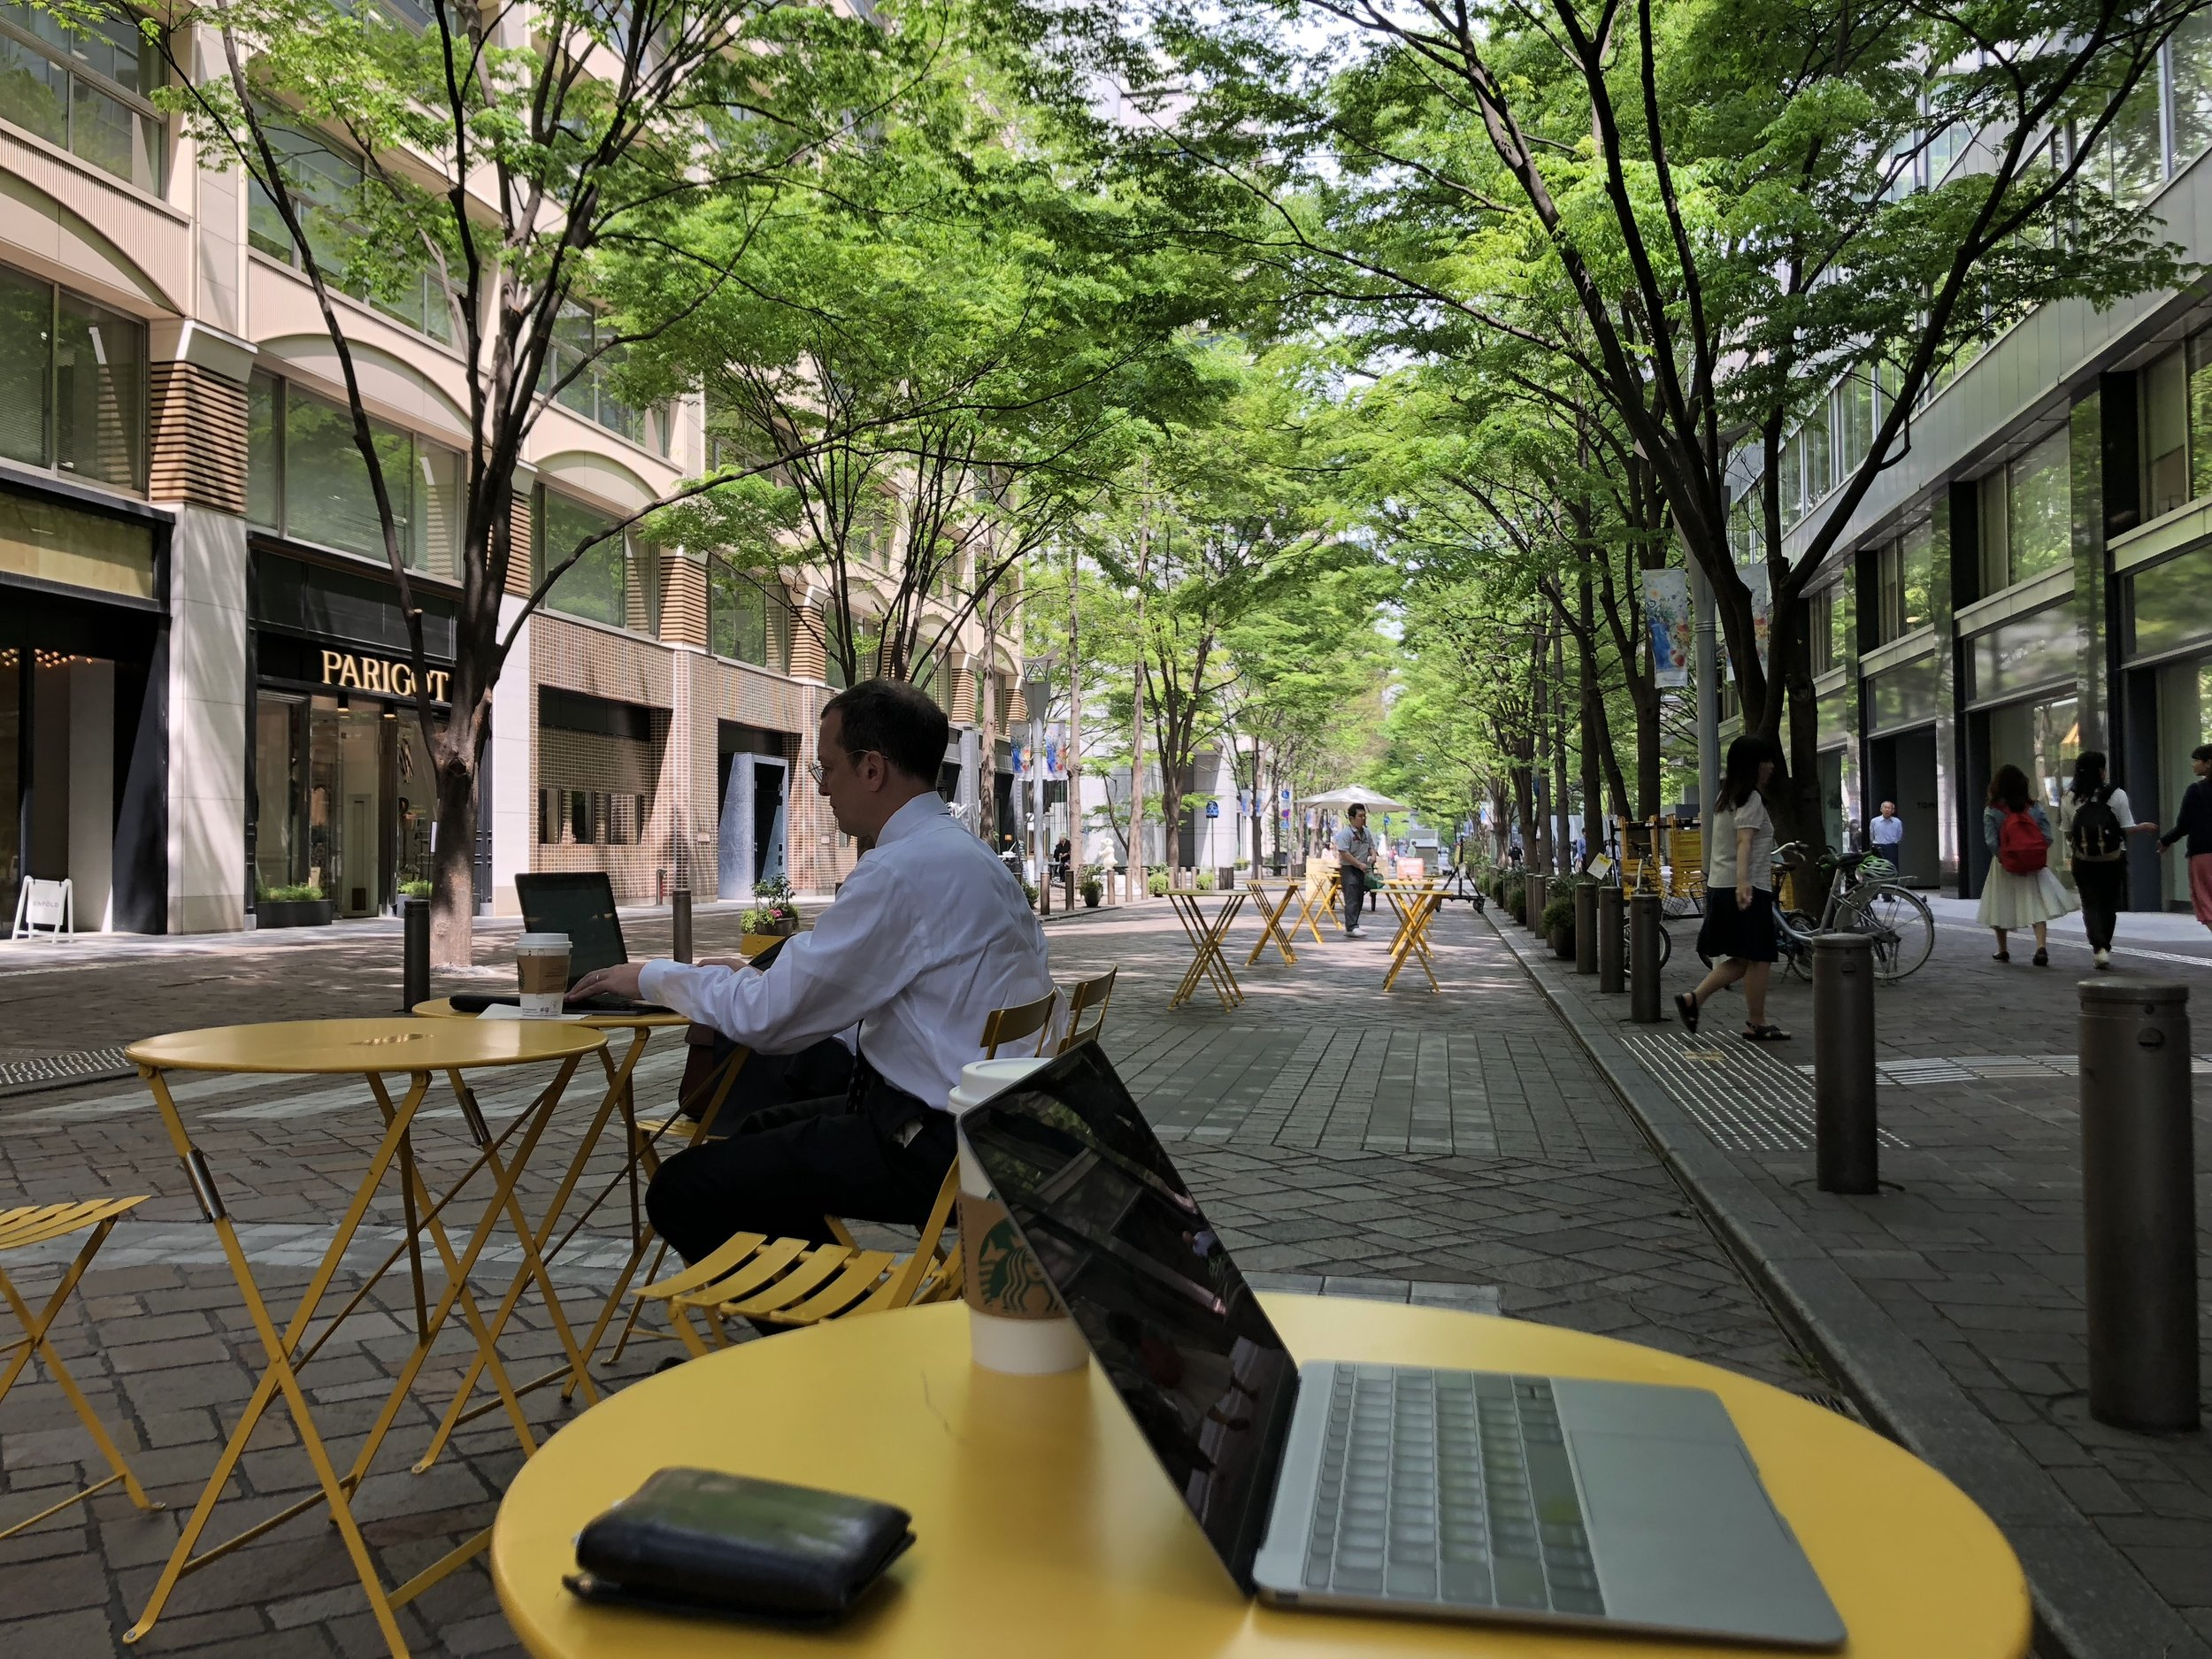 Sitting in downtown Tokyo, it's easy to forget all about Fukushima prefecture. We must not let that happen.